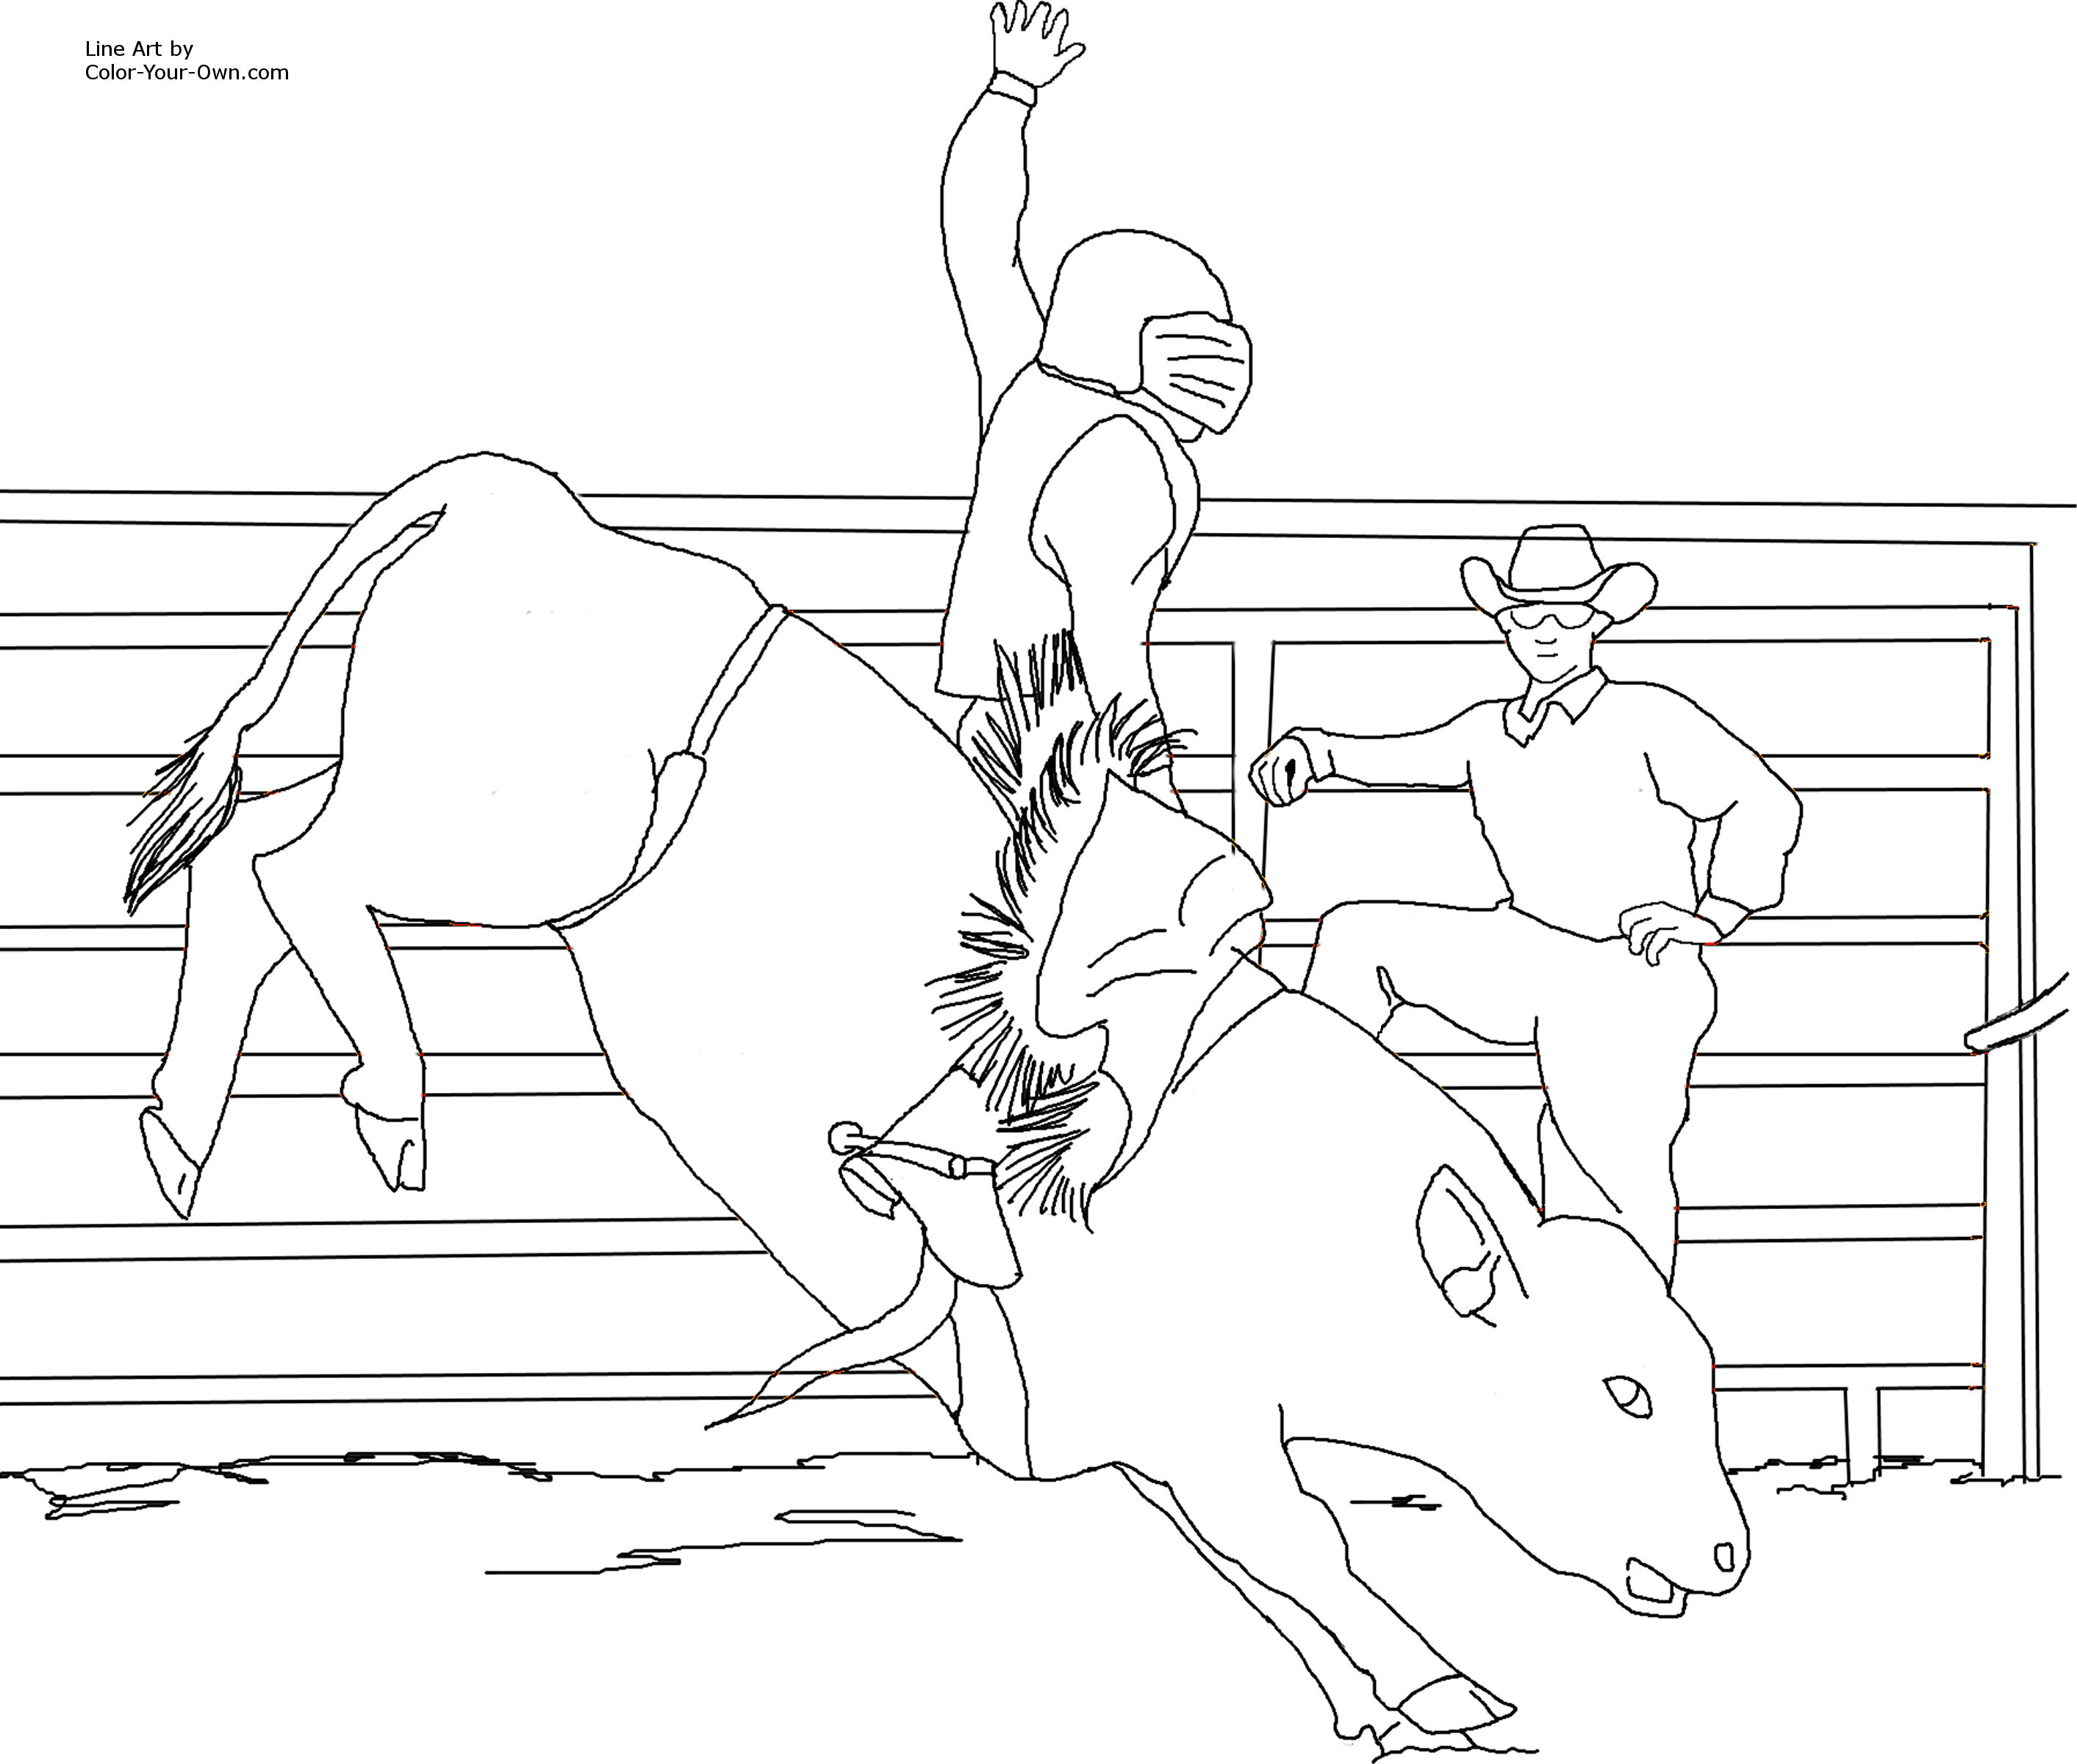 Miniature Bucking Bull Coloring Page